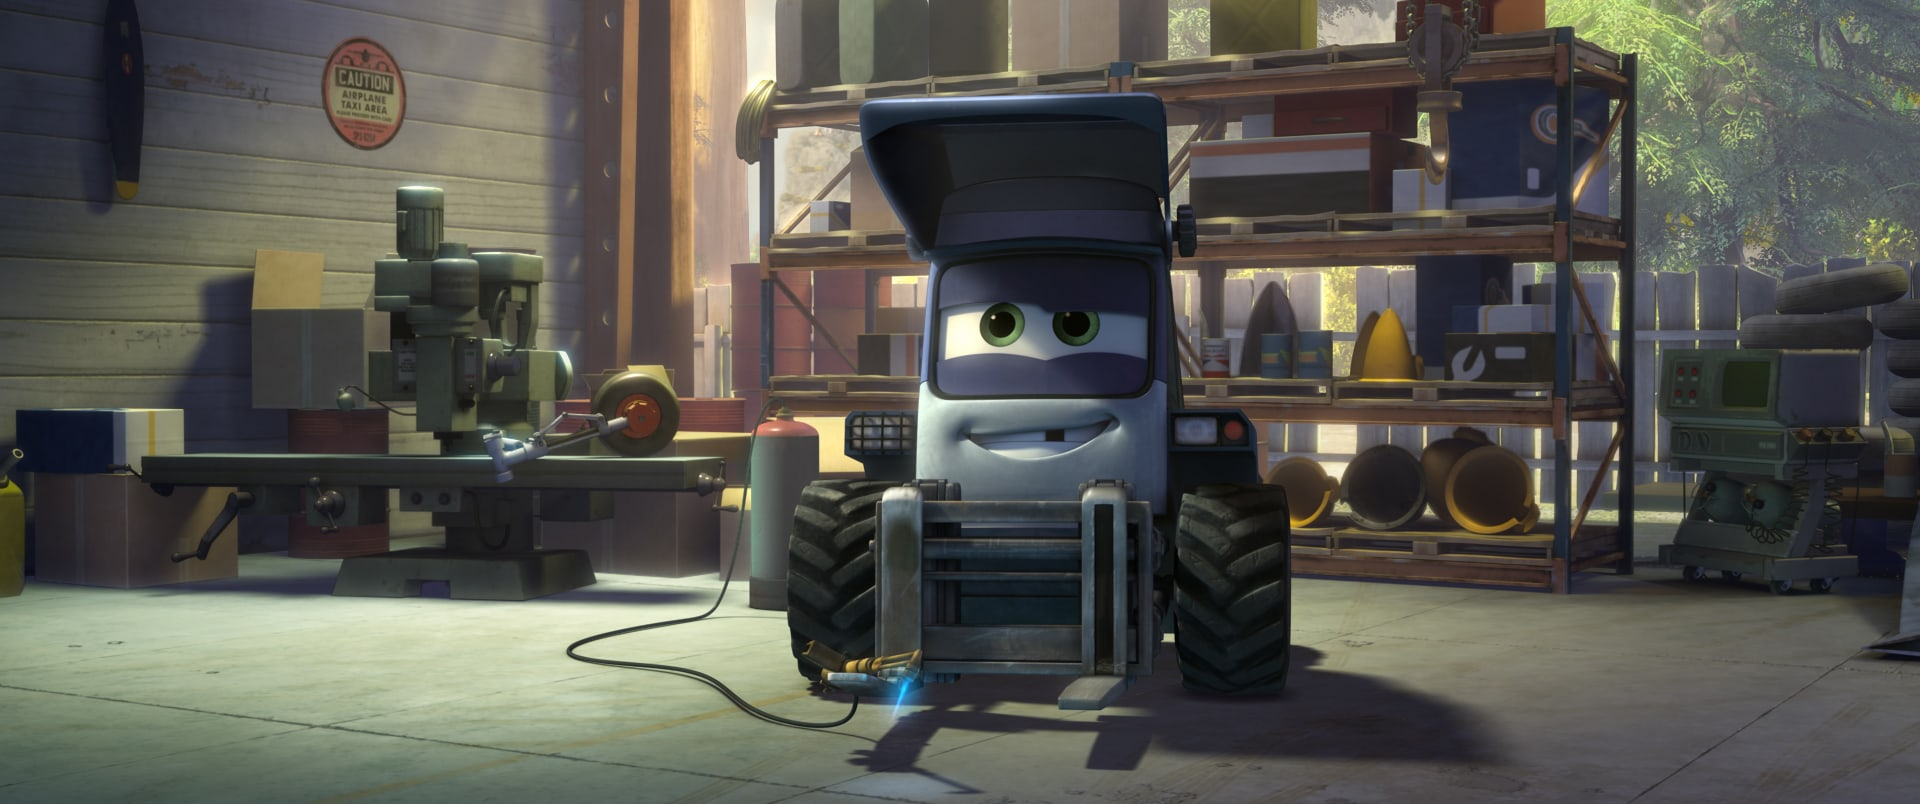 """Maru (Curtis Armstrong) the mechanic tug at Piston Peak Air Attack base. From the movie """"Planes: Fire & Rescue"""""""